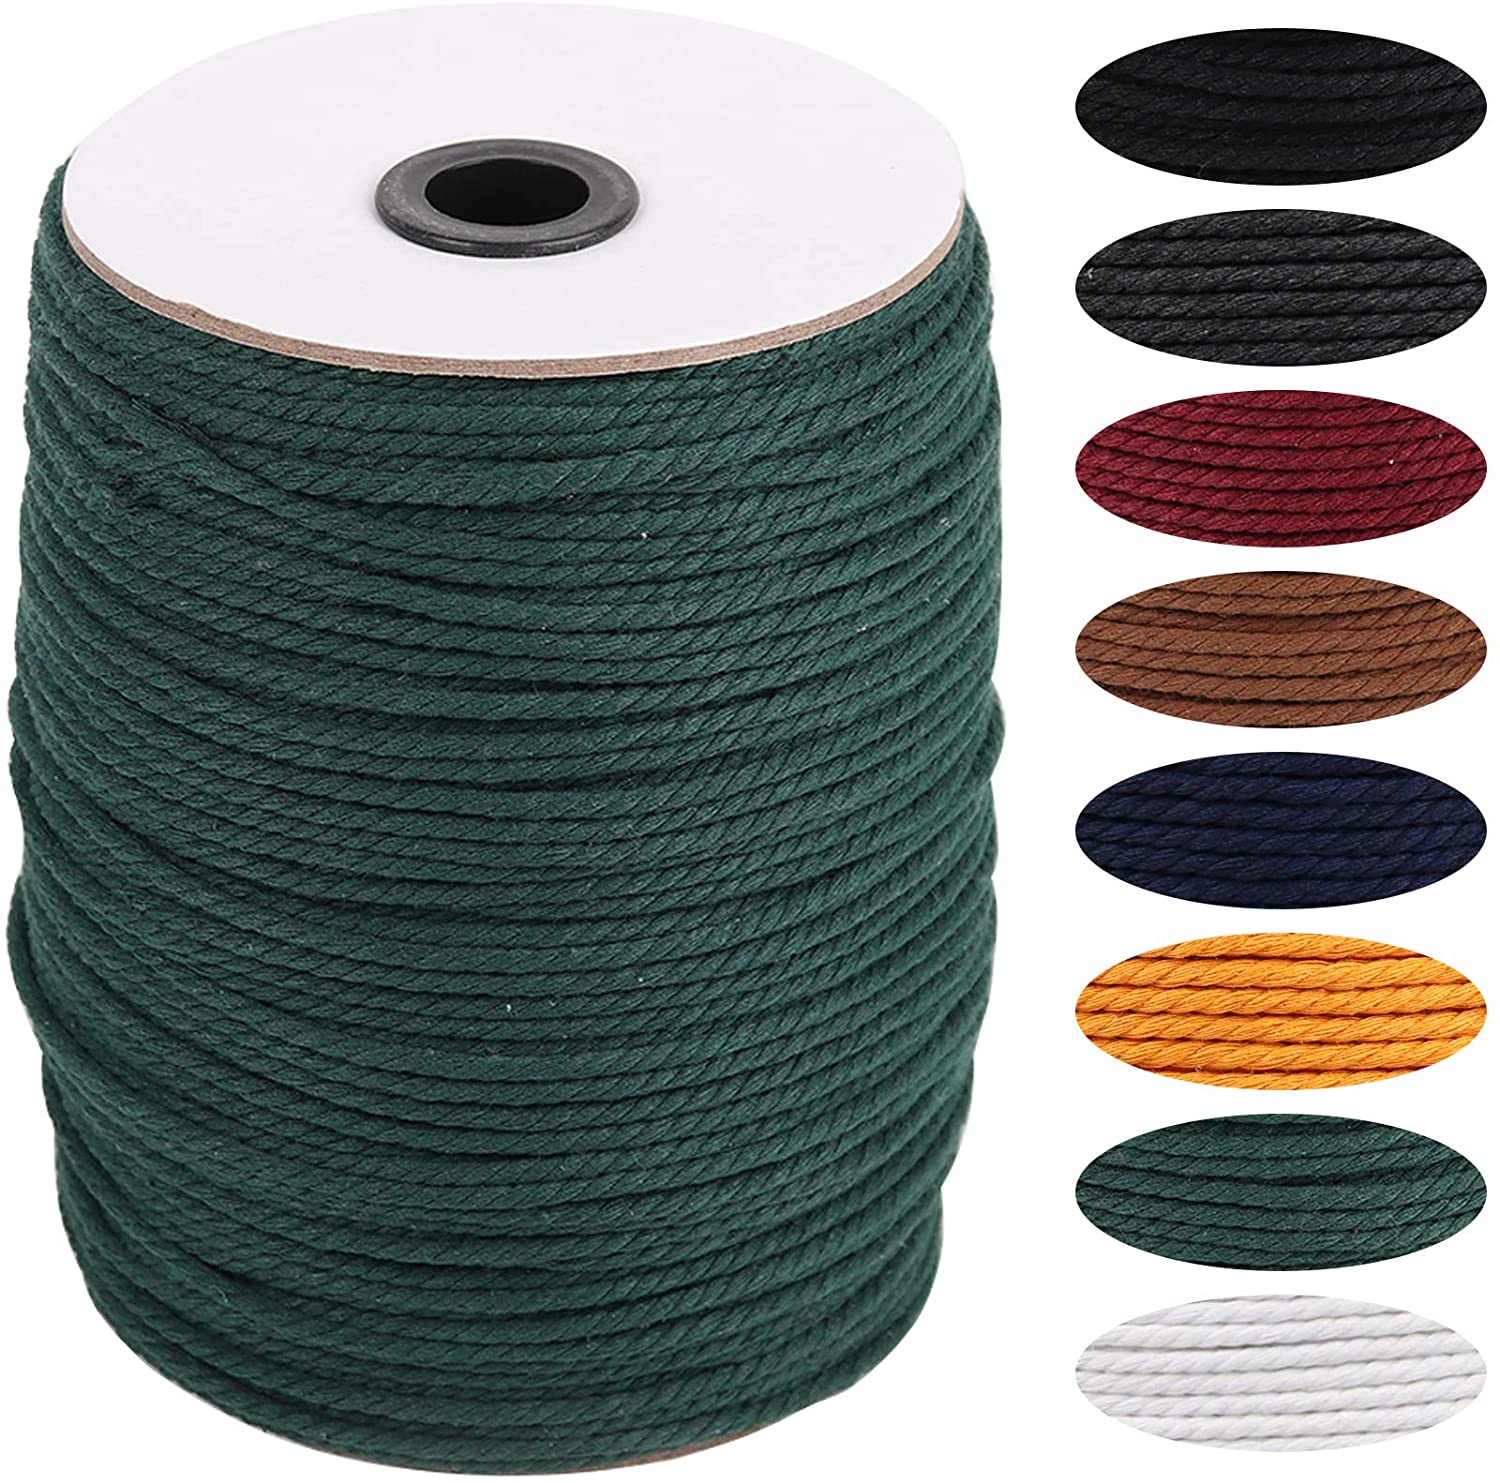 Deep Green Macrame Cord 3mm x 270yards, Colored Macrame Rope, 3 Strand Twisted Cotton Rope Macrame Yarn, Colorful Cotton Craft Cord for Wall Hanging, Plant Hangers, Crafts